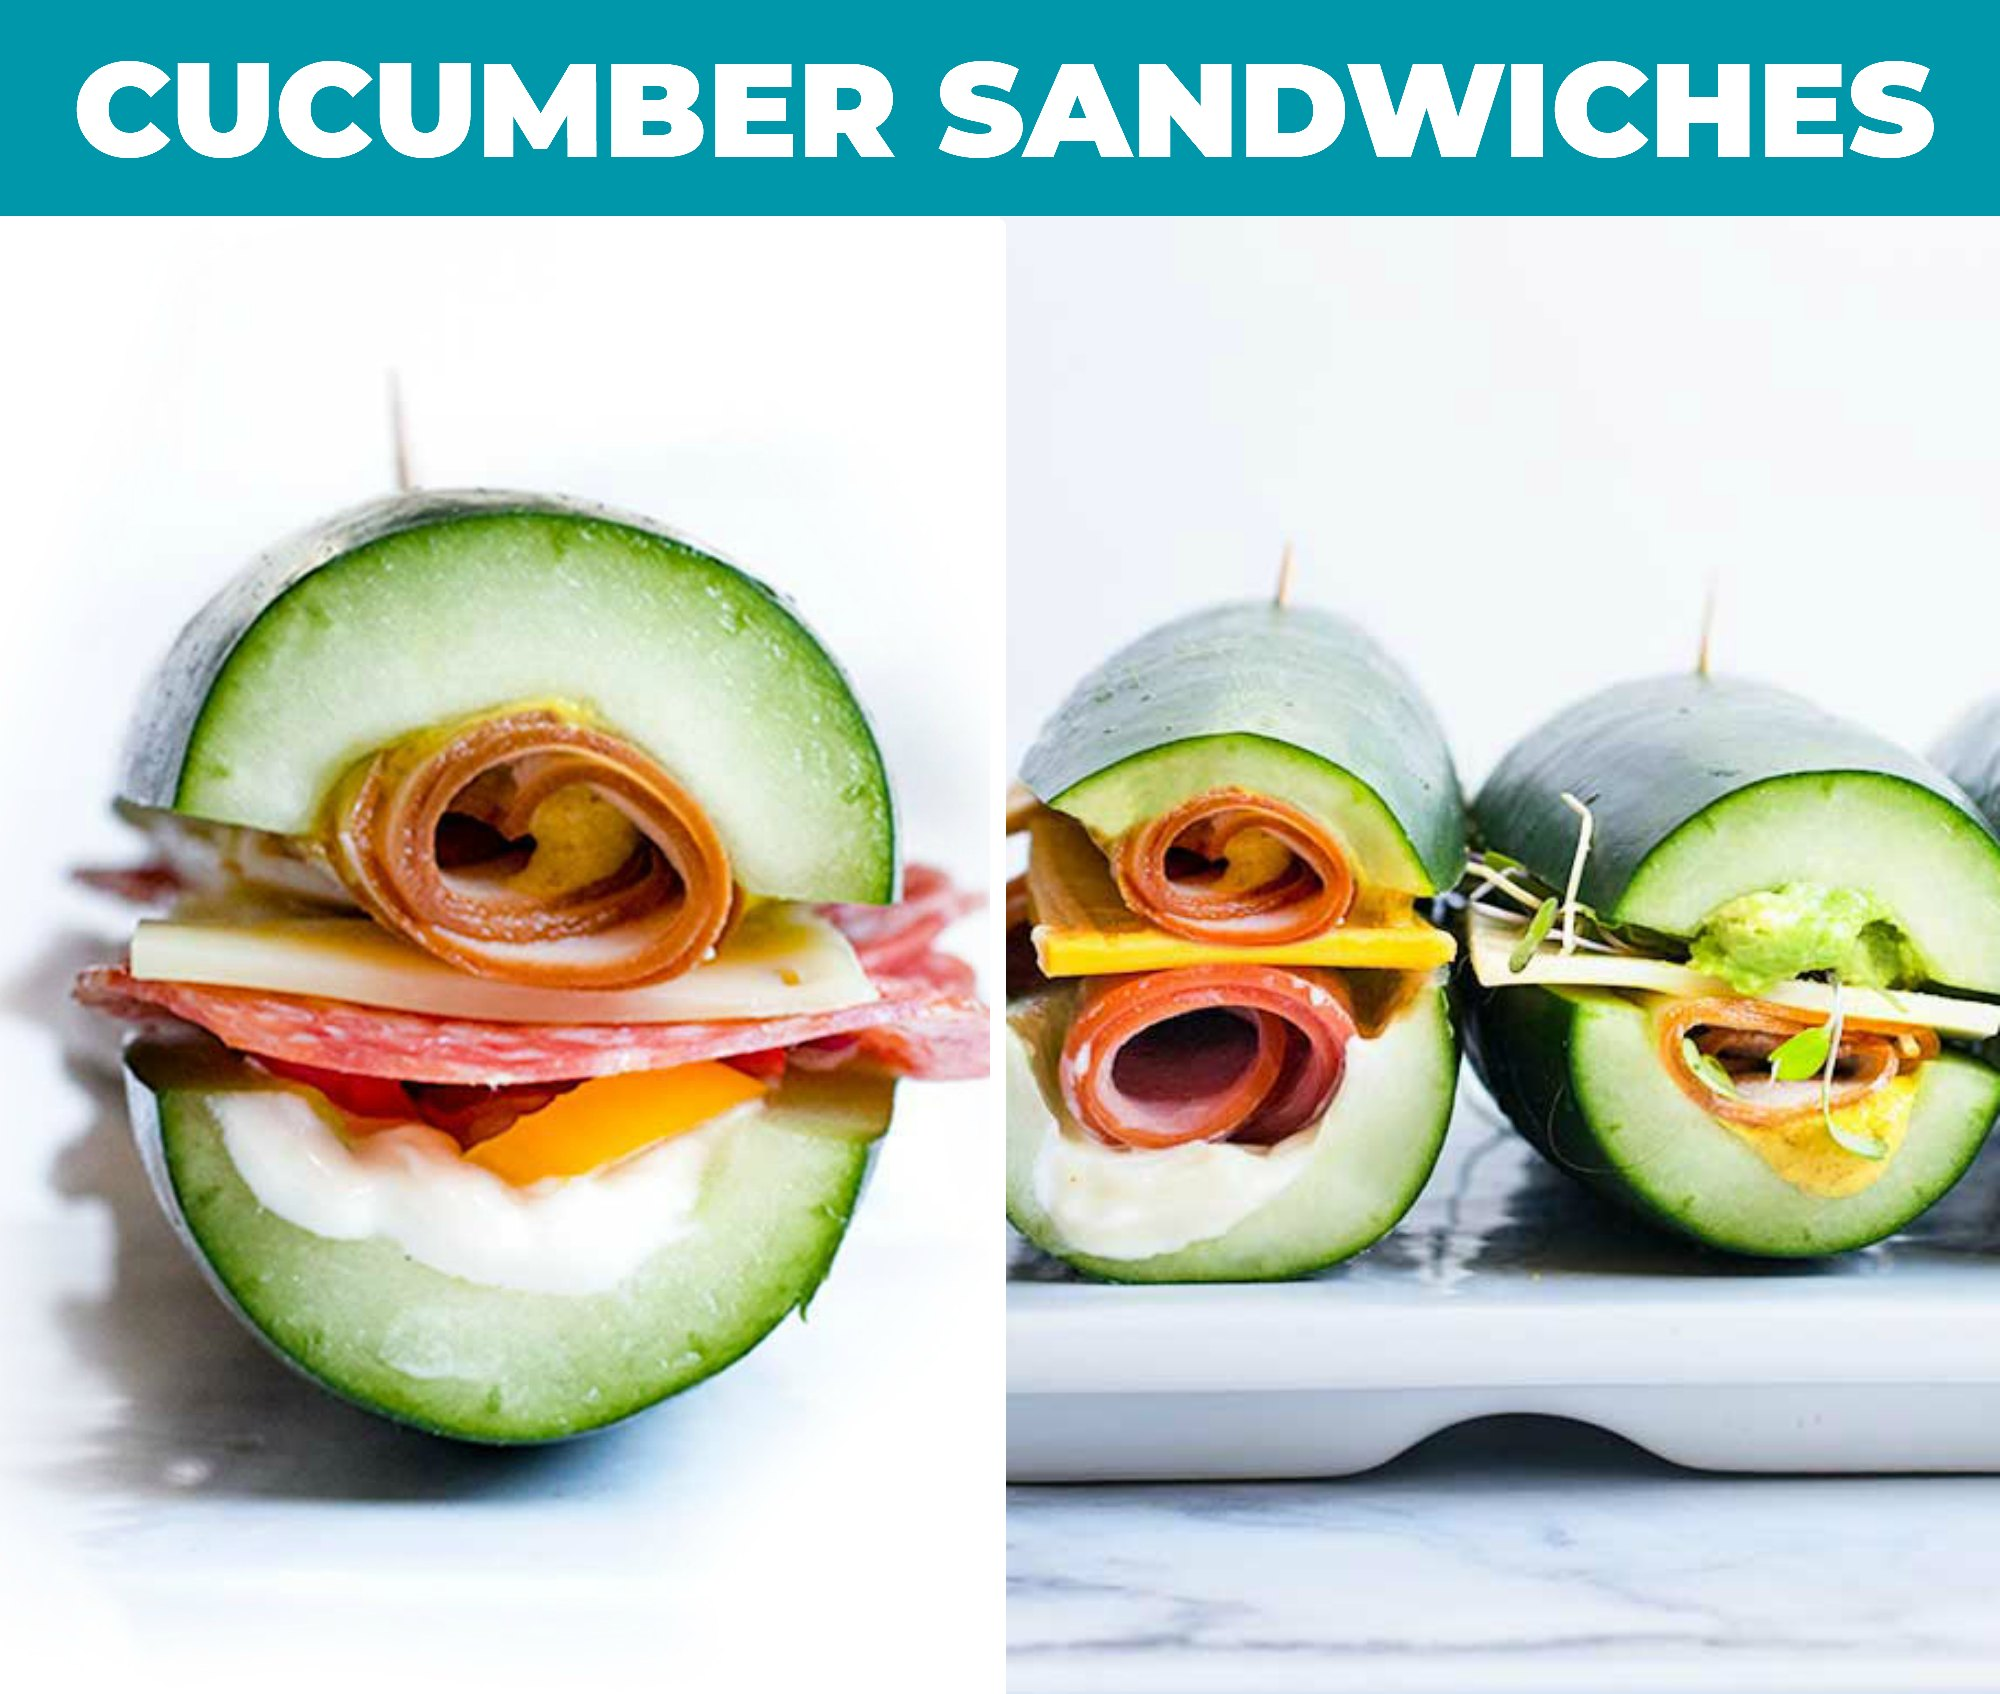 Images of cucumber sandwiches